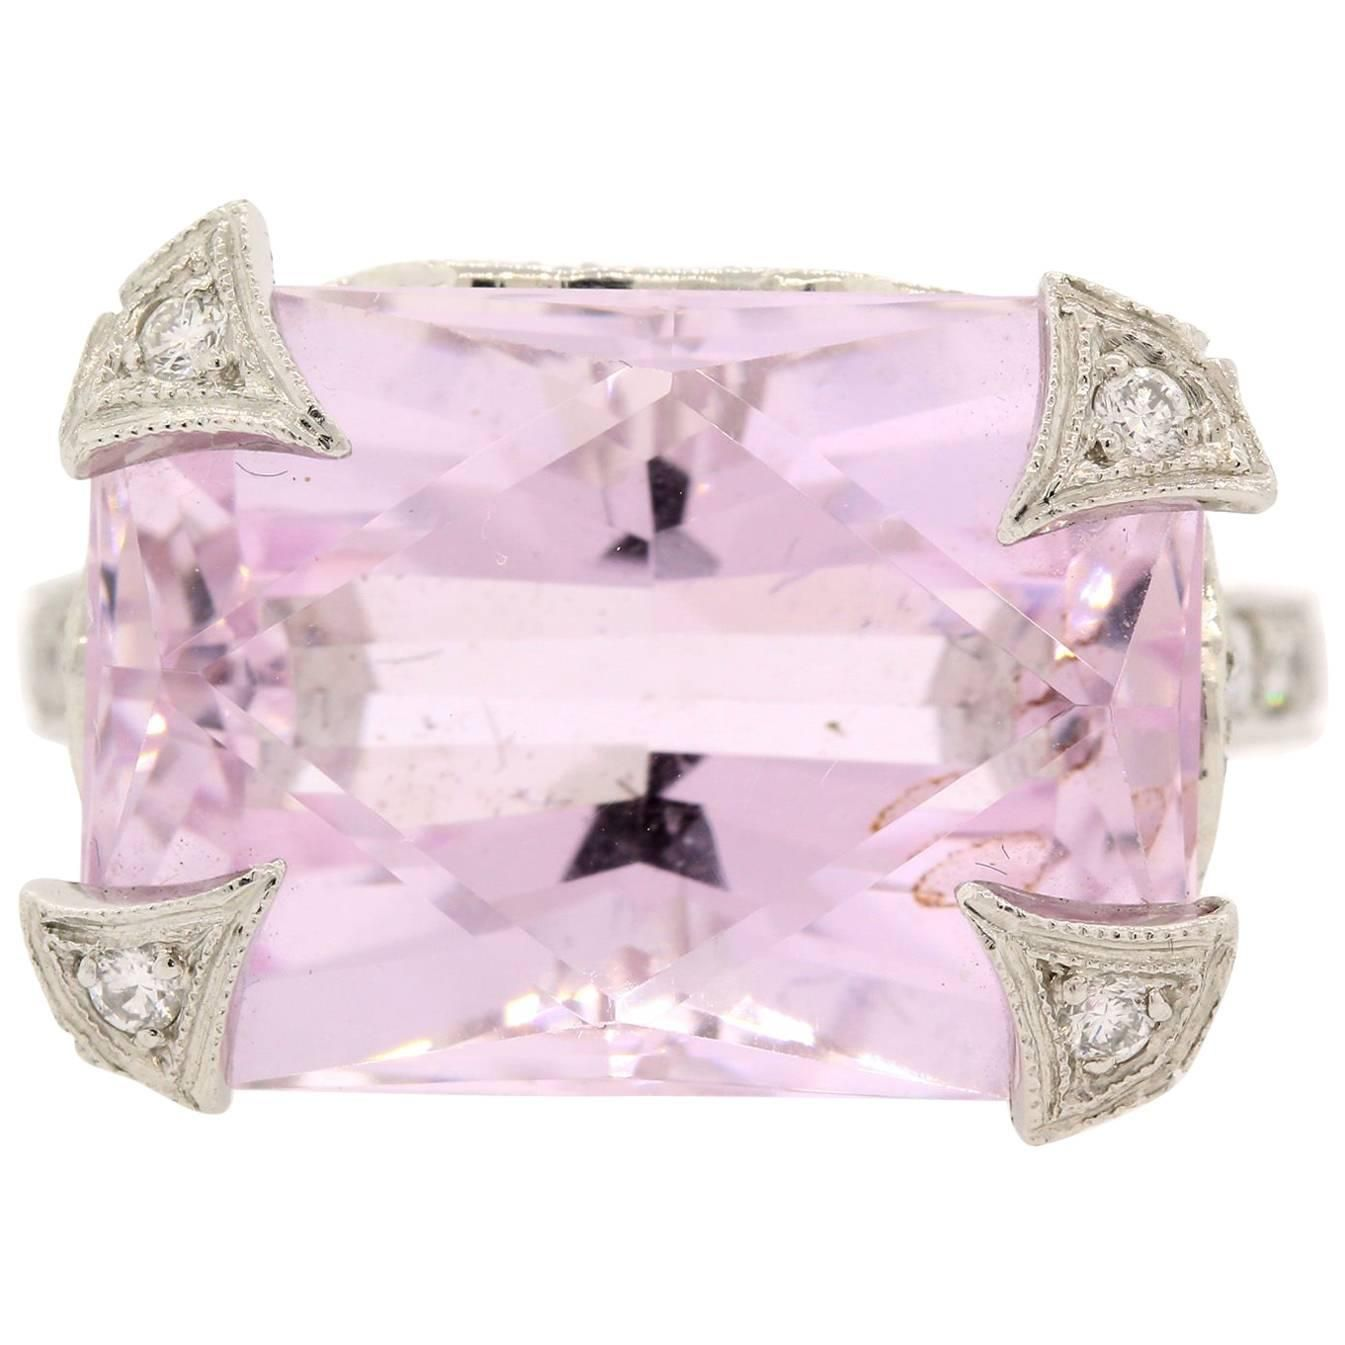 Cathy Waterman Kunzite Diamond Platinum Ring | Cathy waterman ...